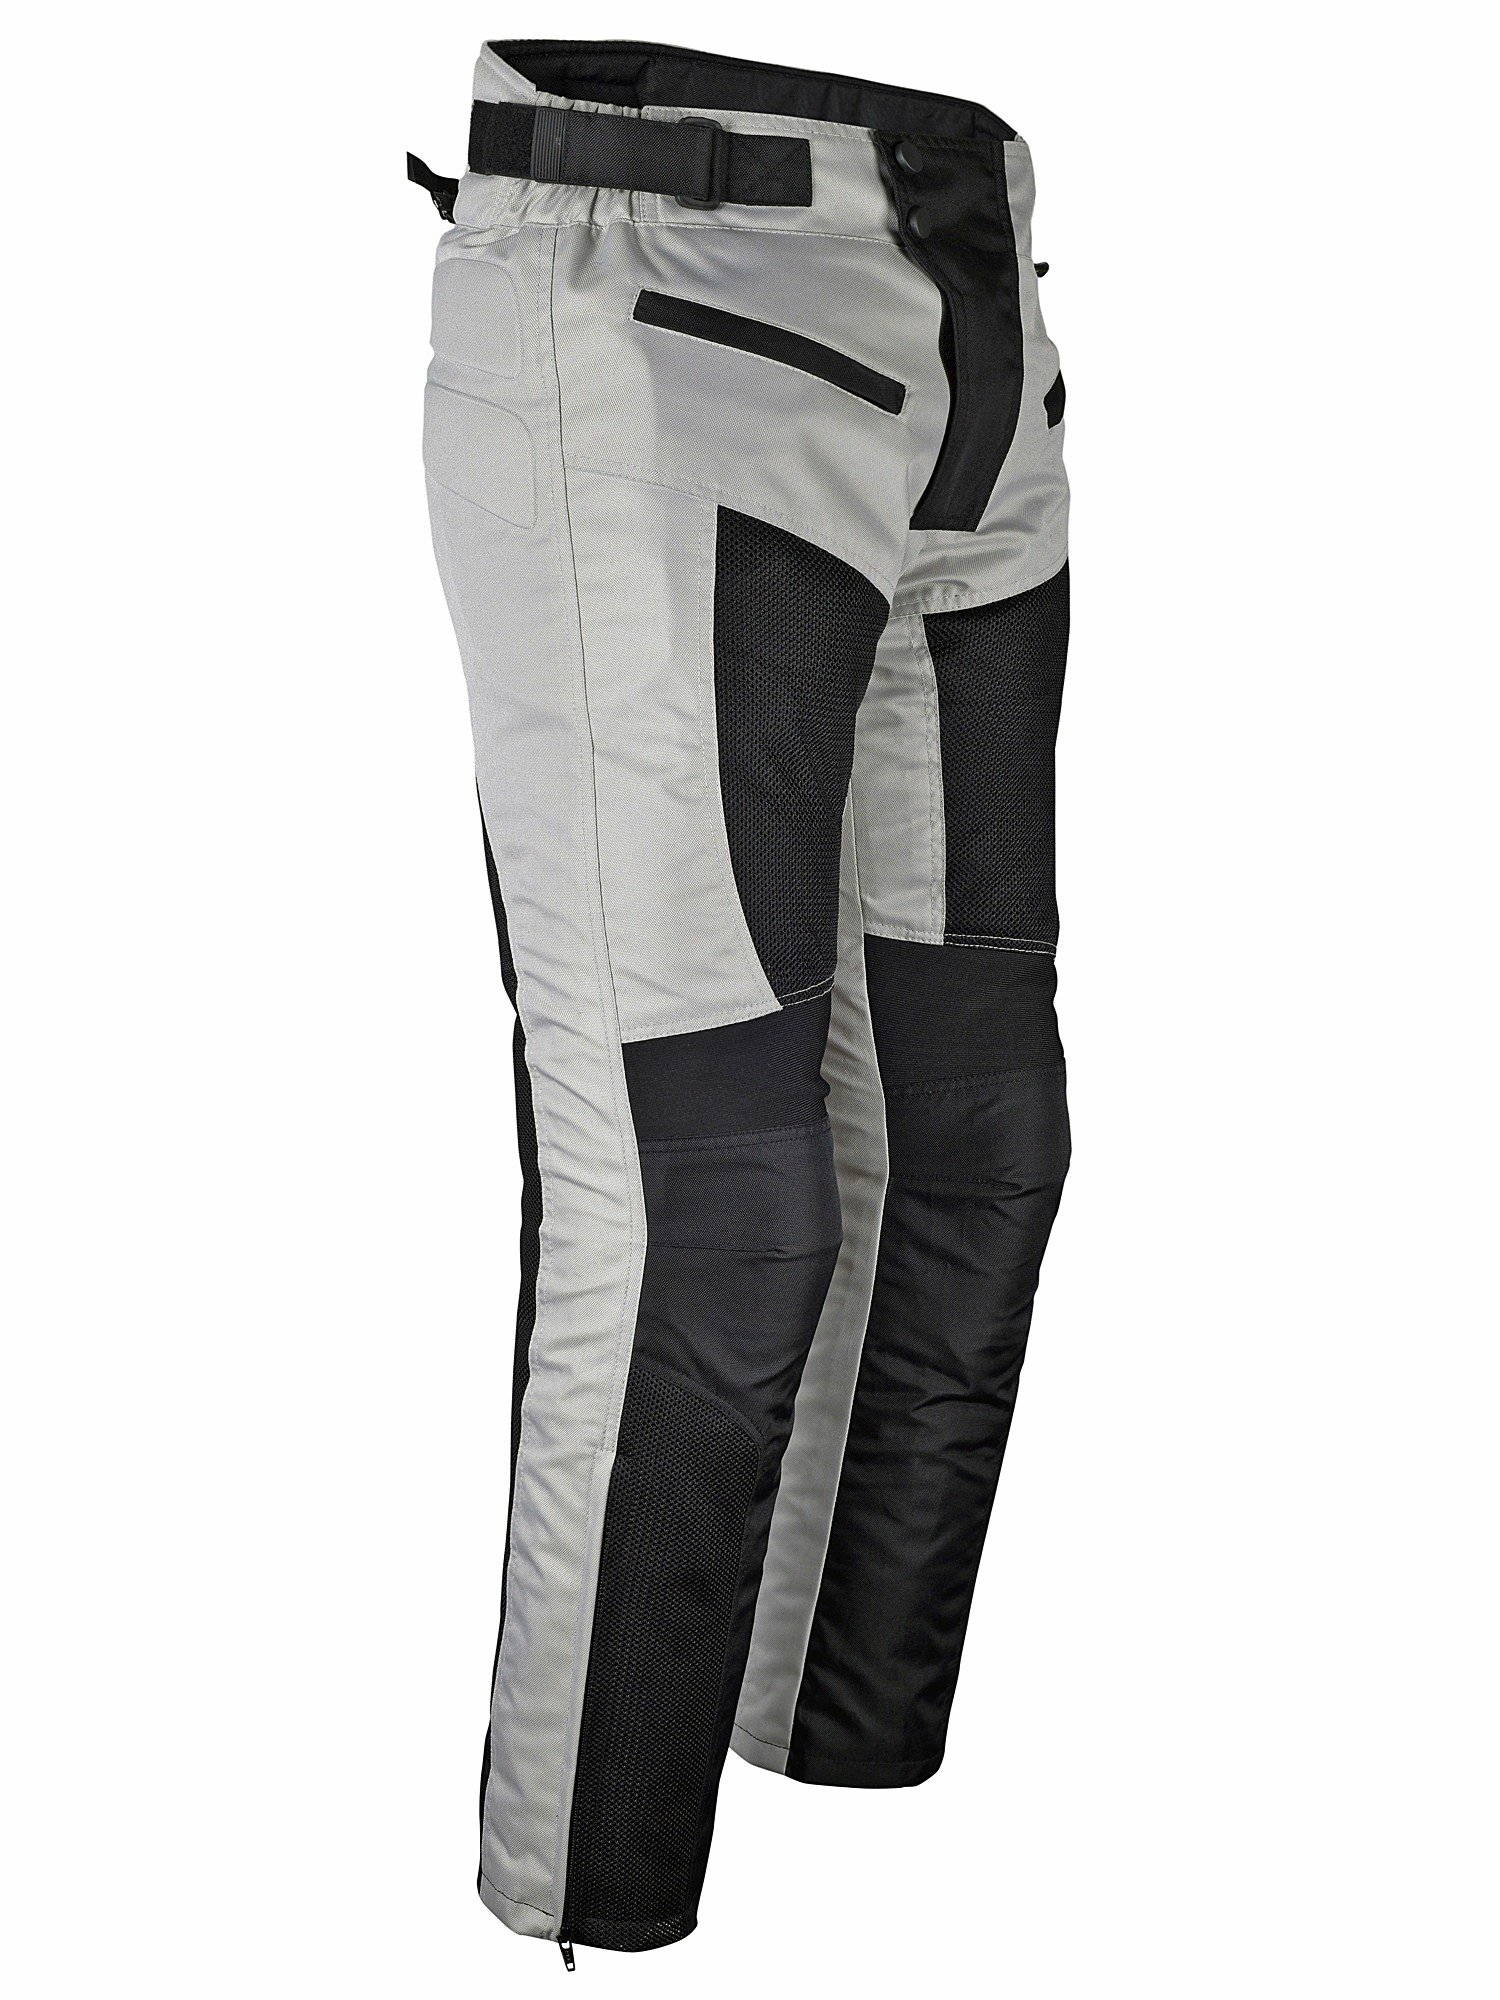 Mens Motorcycle Riding Pants Grey Black Mesh with CE Approved Armor by WICKED STOCK